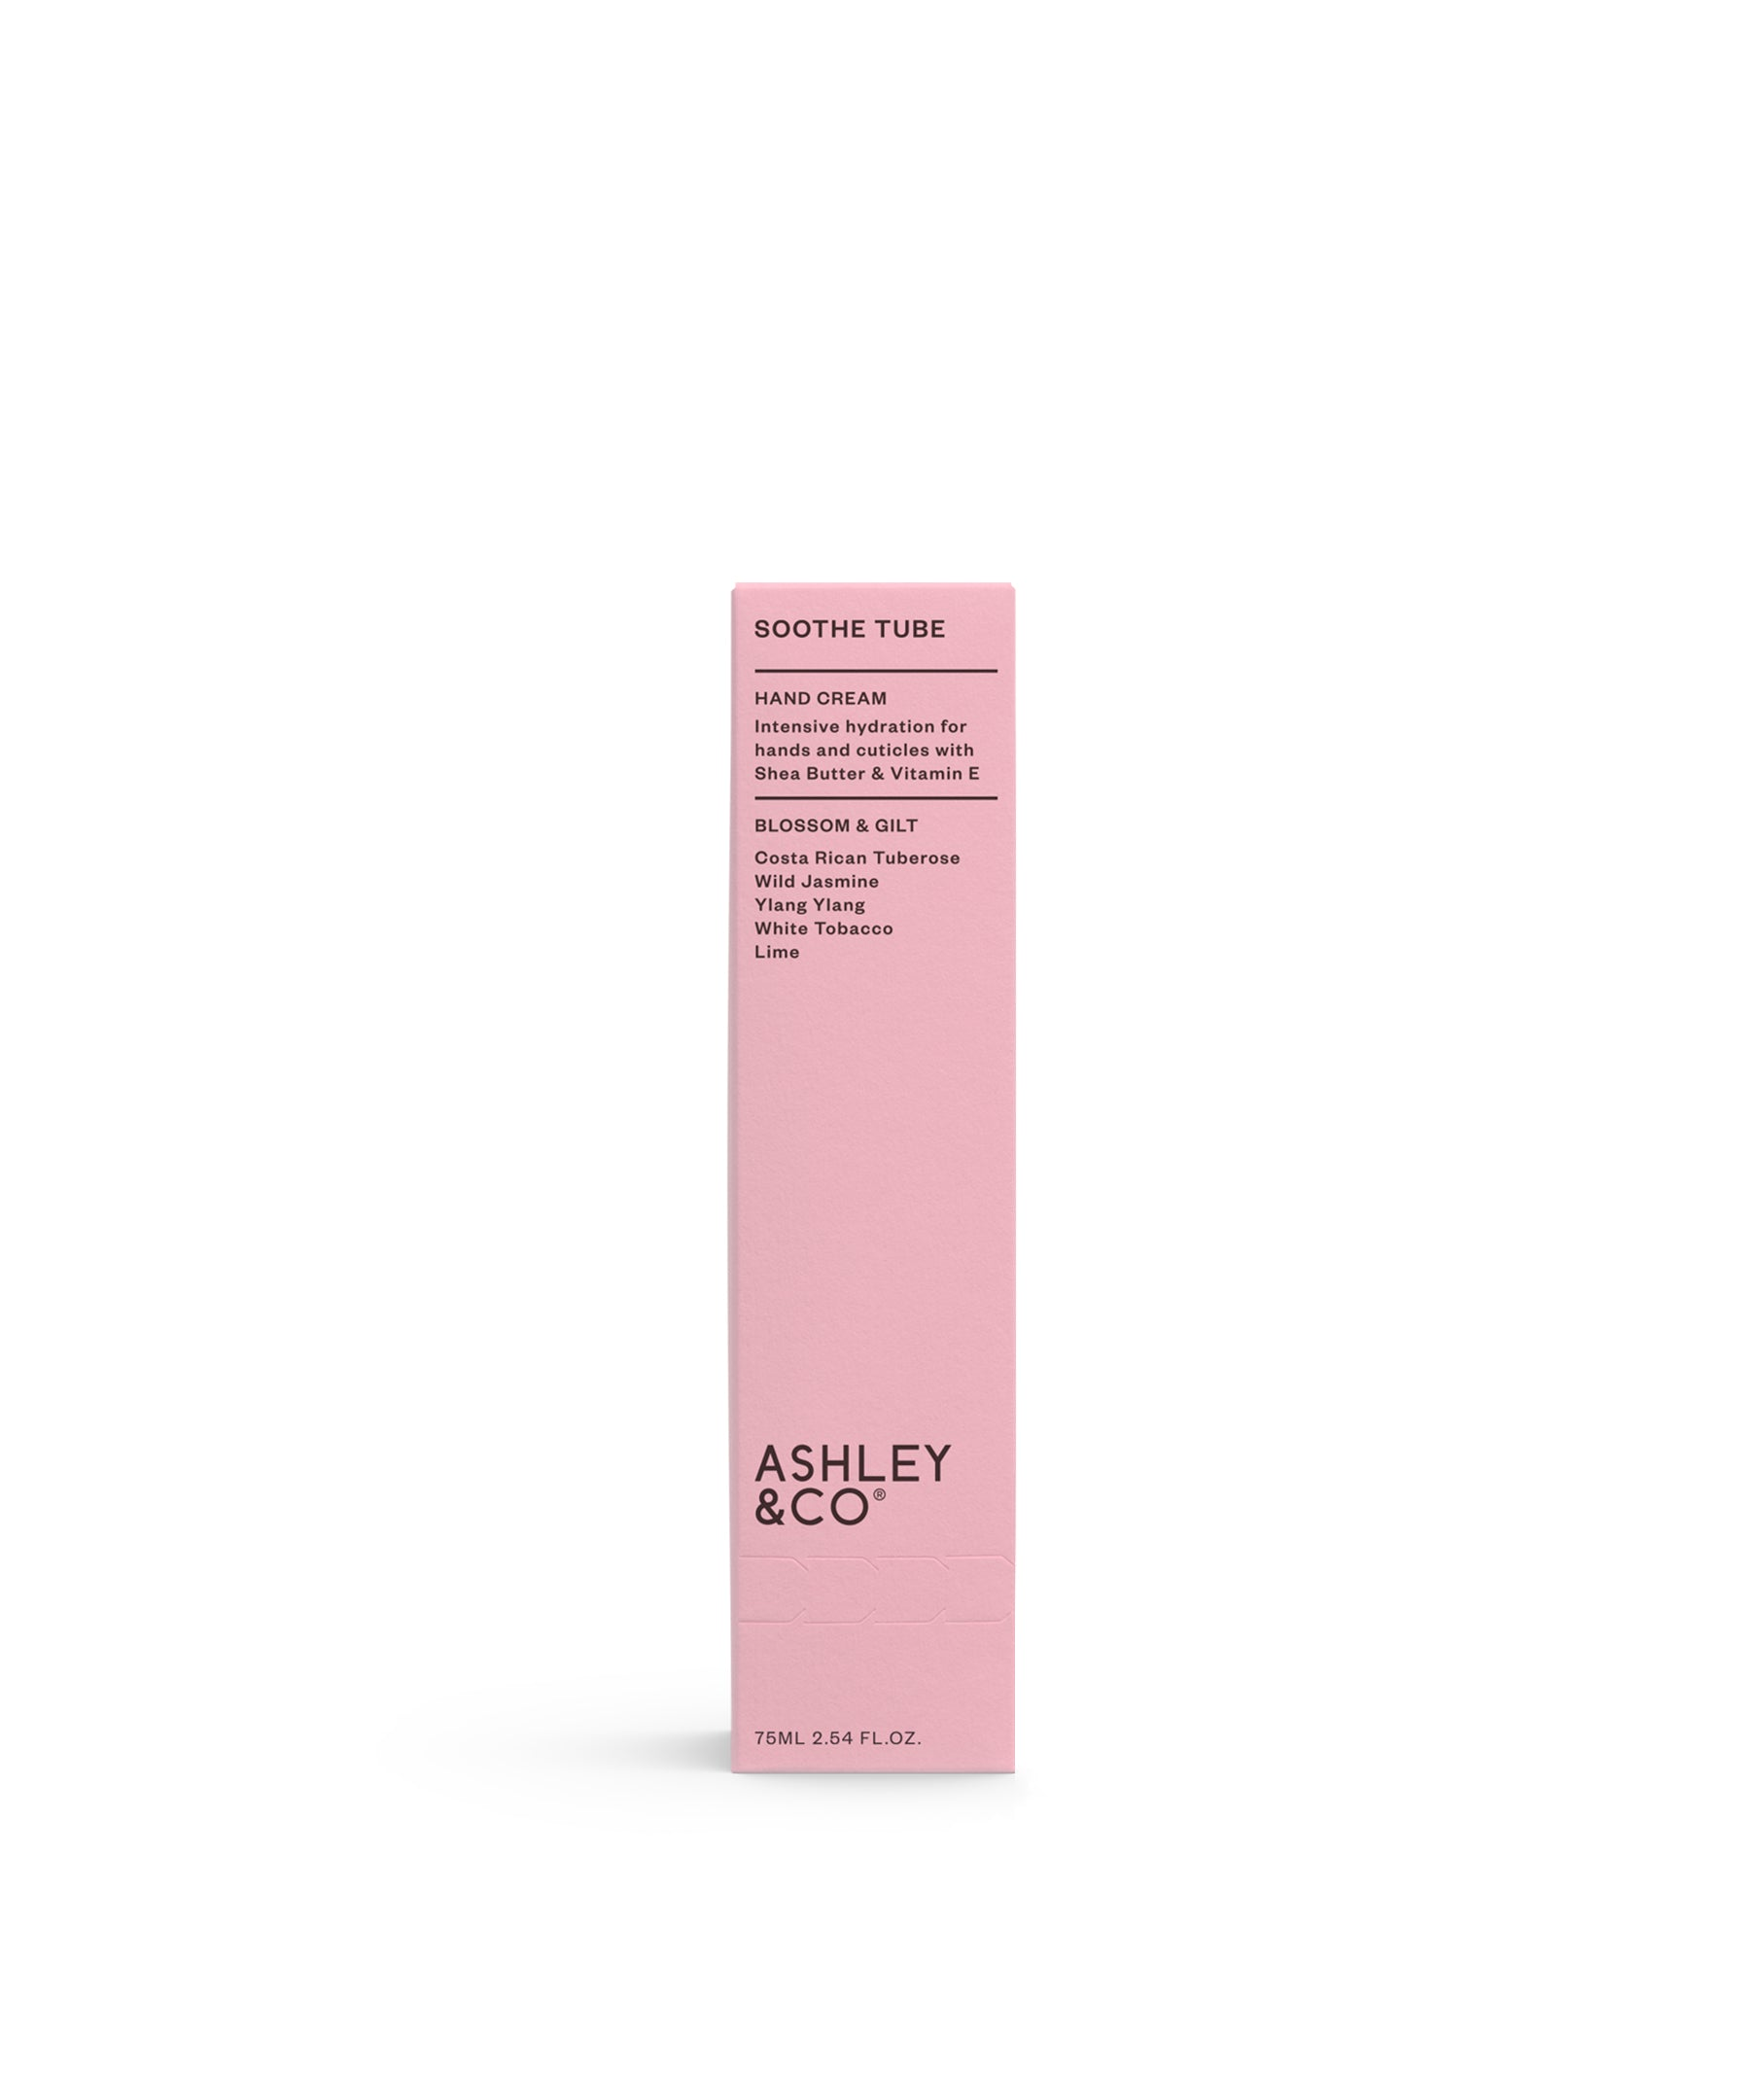 Blossom & Gilt Soothe Tube by Ashley & Co.